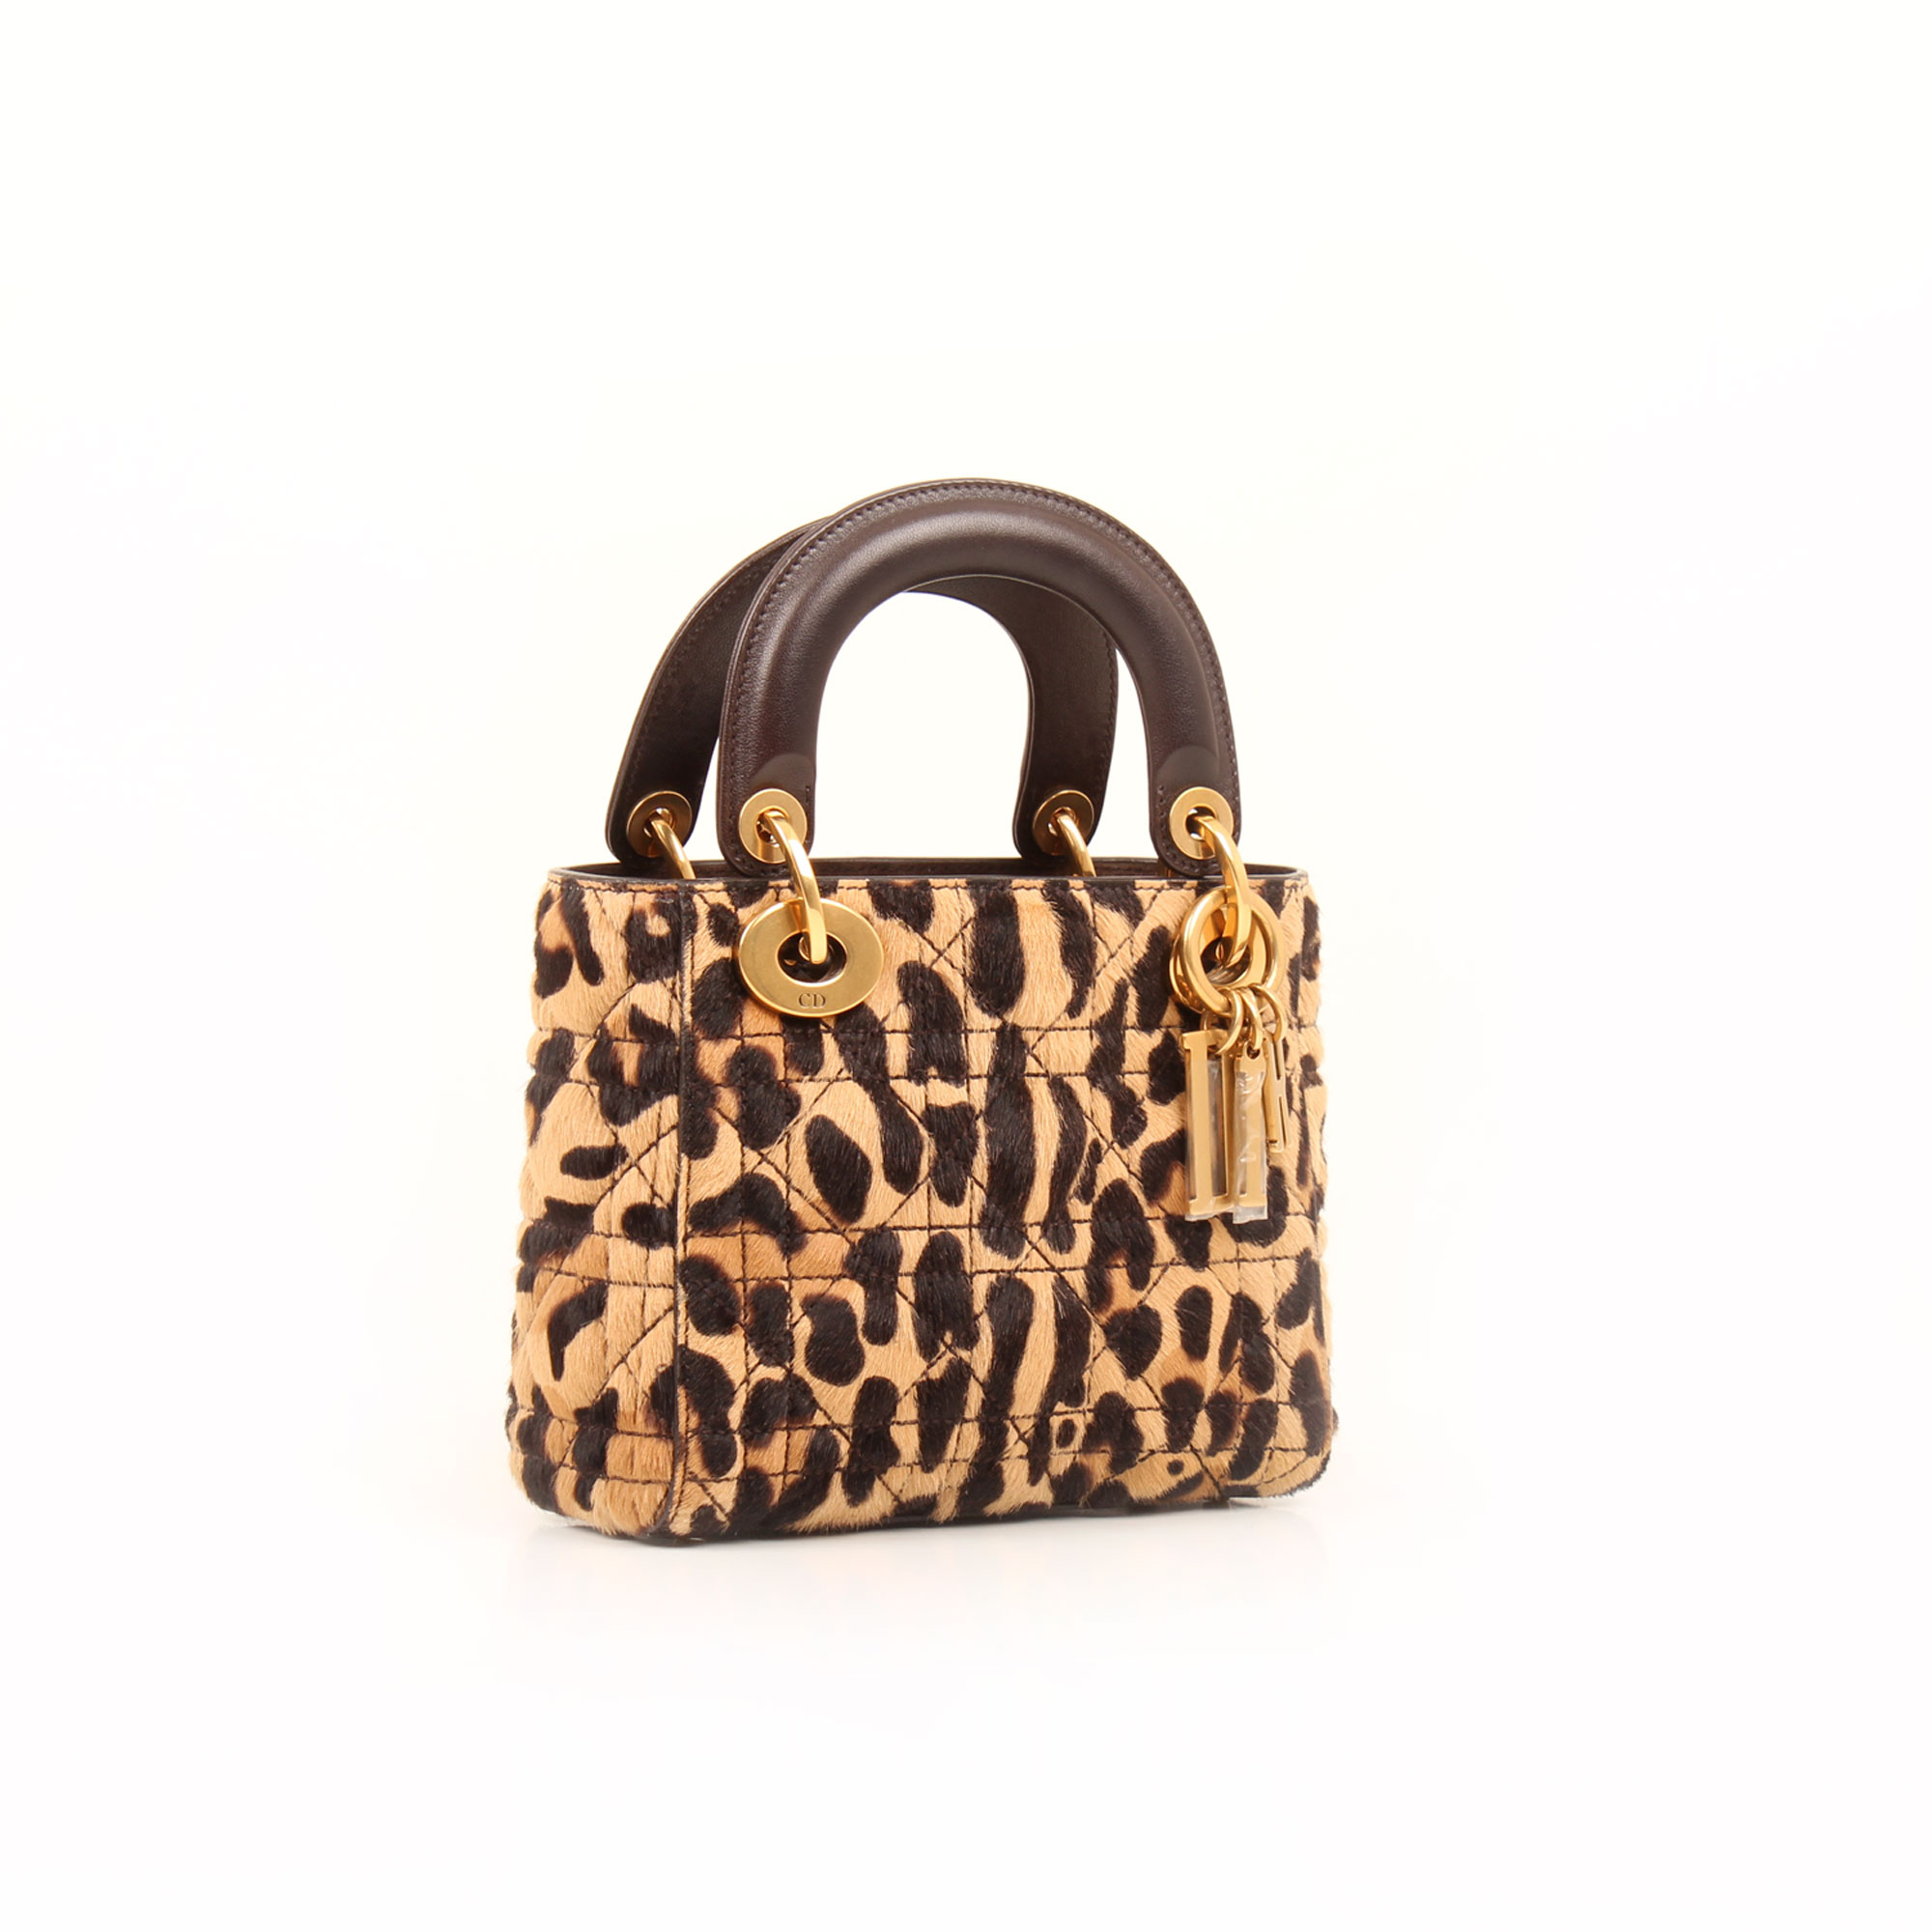 Imagen general del bolso dior lady dior mini animal print pony calfskin